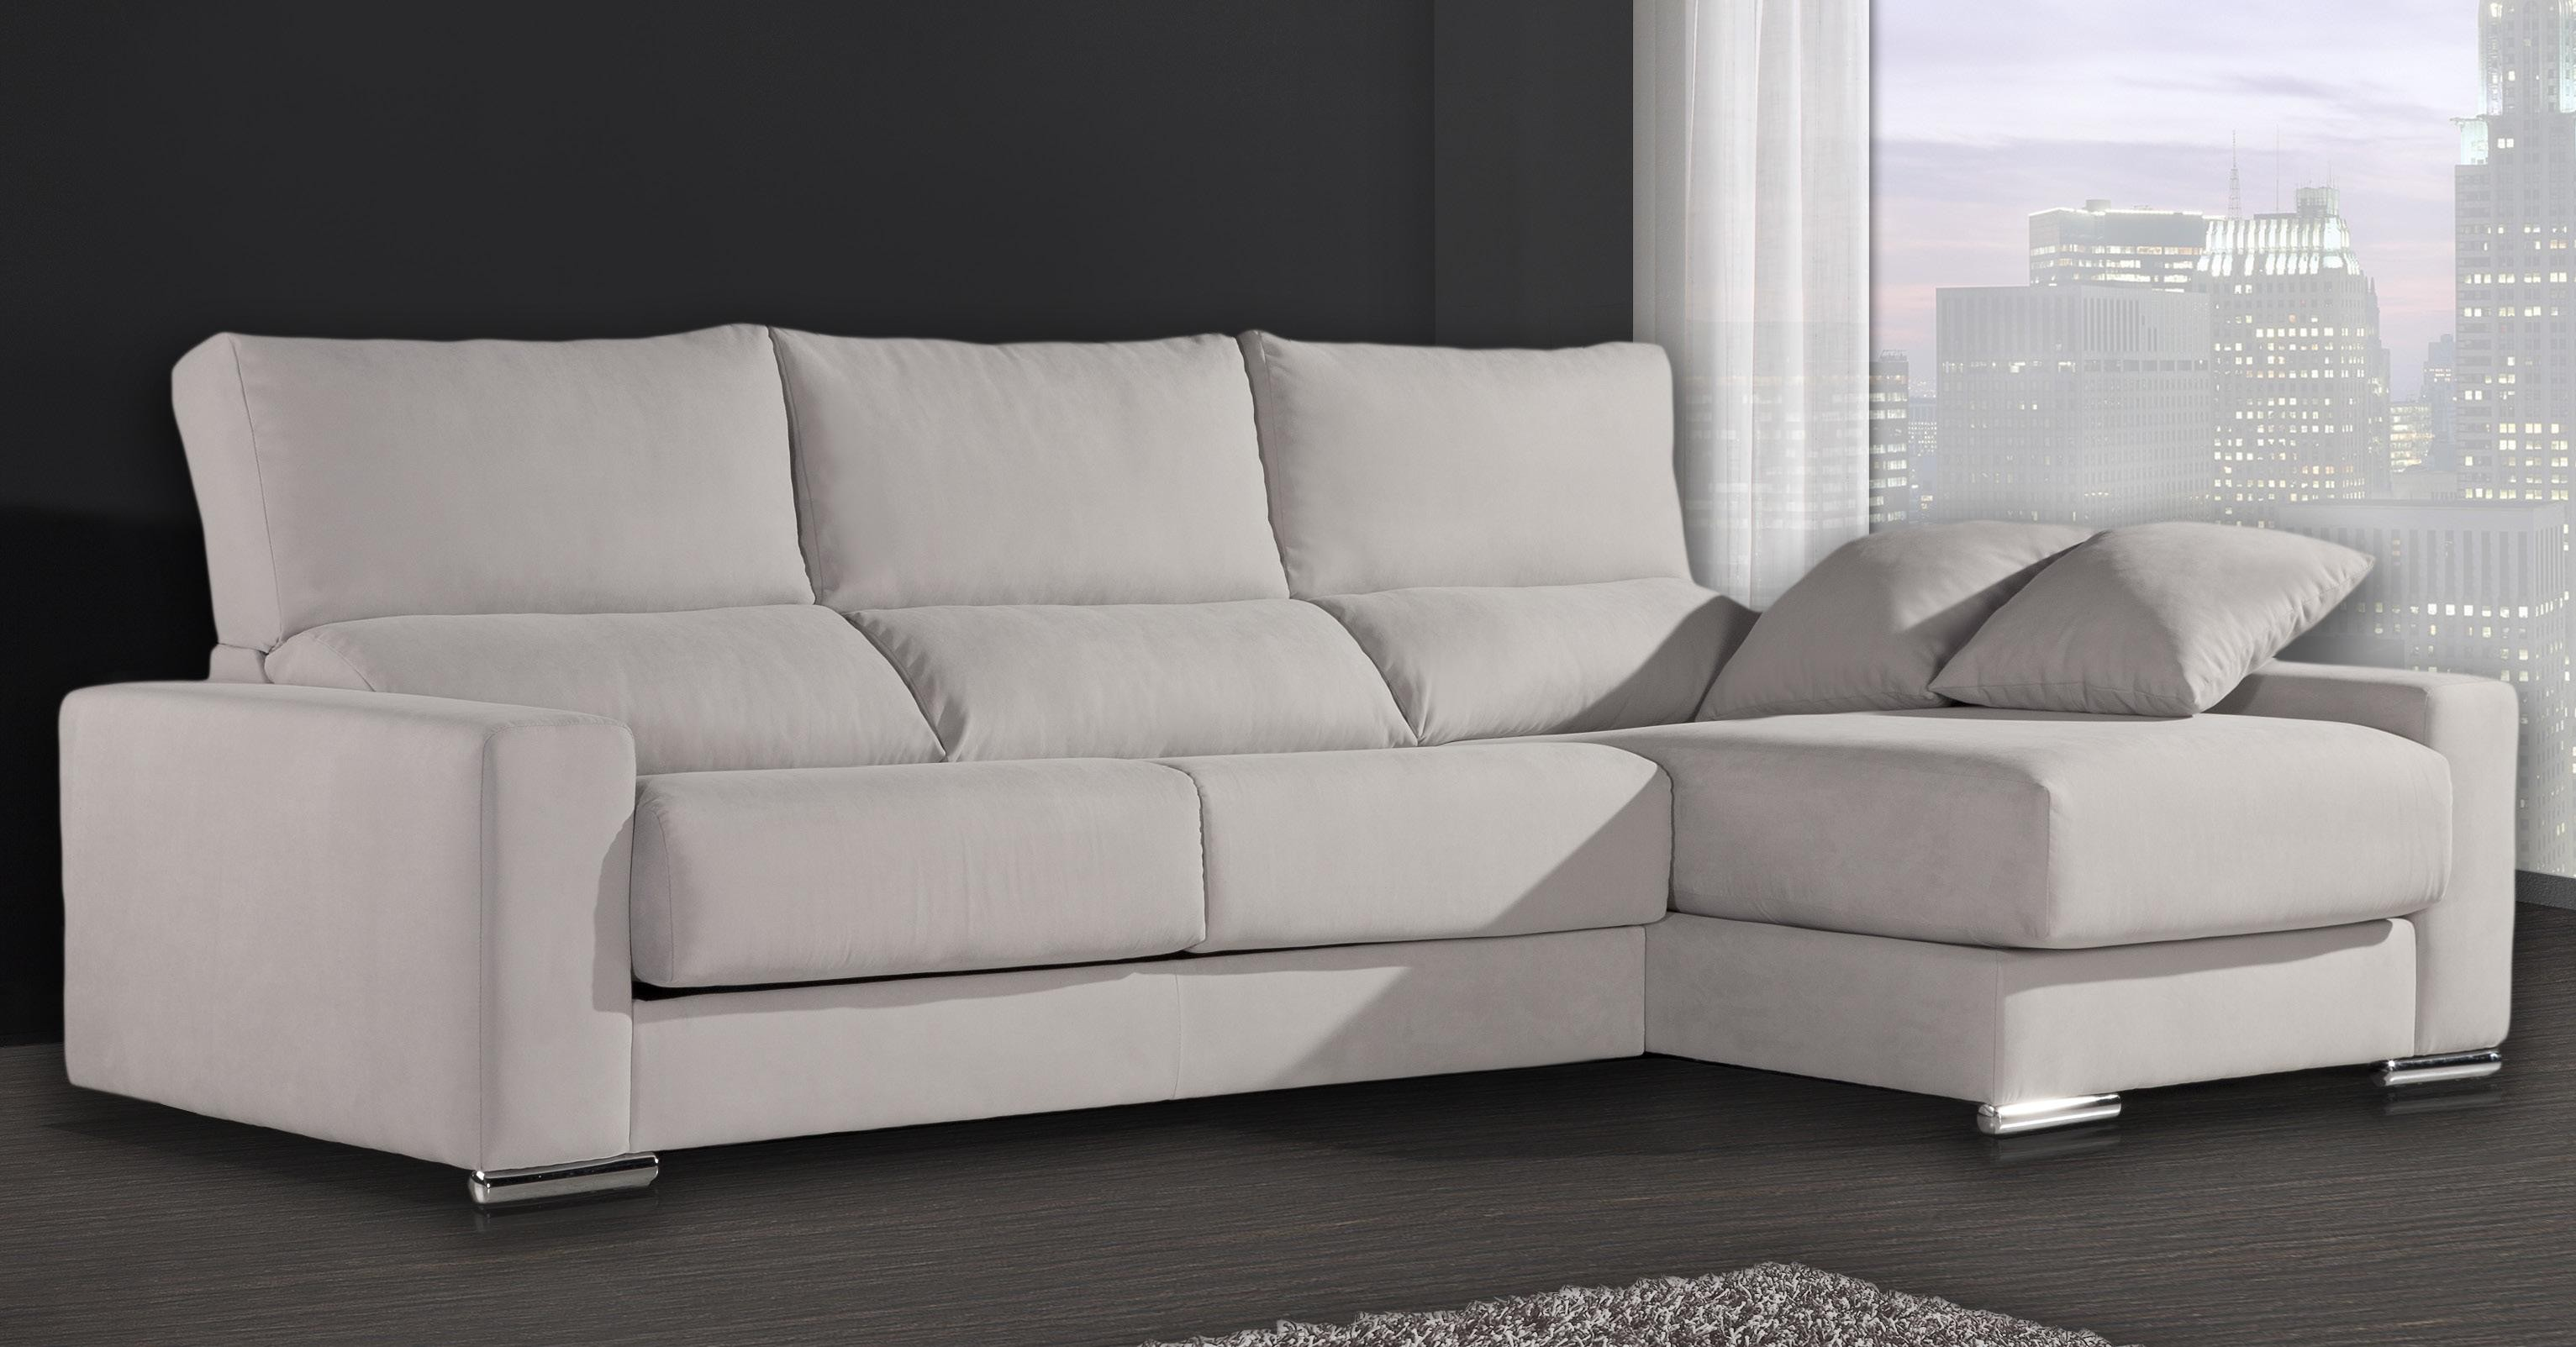 Sofas y chaise longue baratos for Sofa cama chaise longue